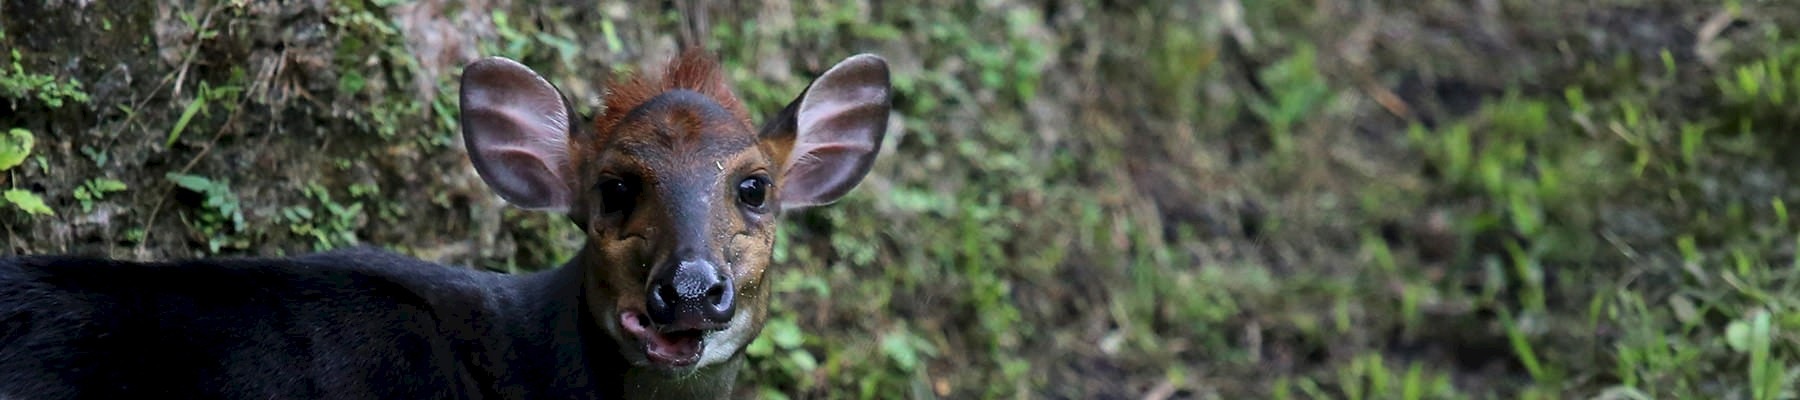 The black duiker: managed hunting provides a sustainable source of wild meat for local communities © cuatrok77 / Creative Commons 2.0